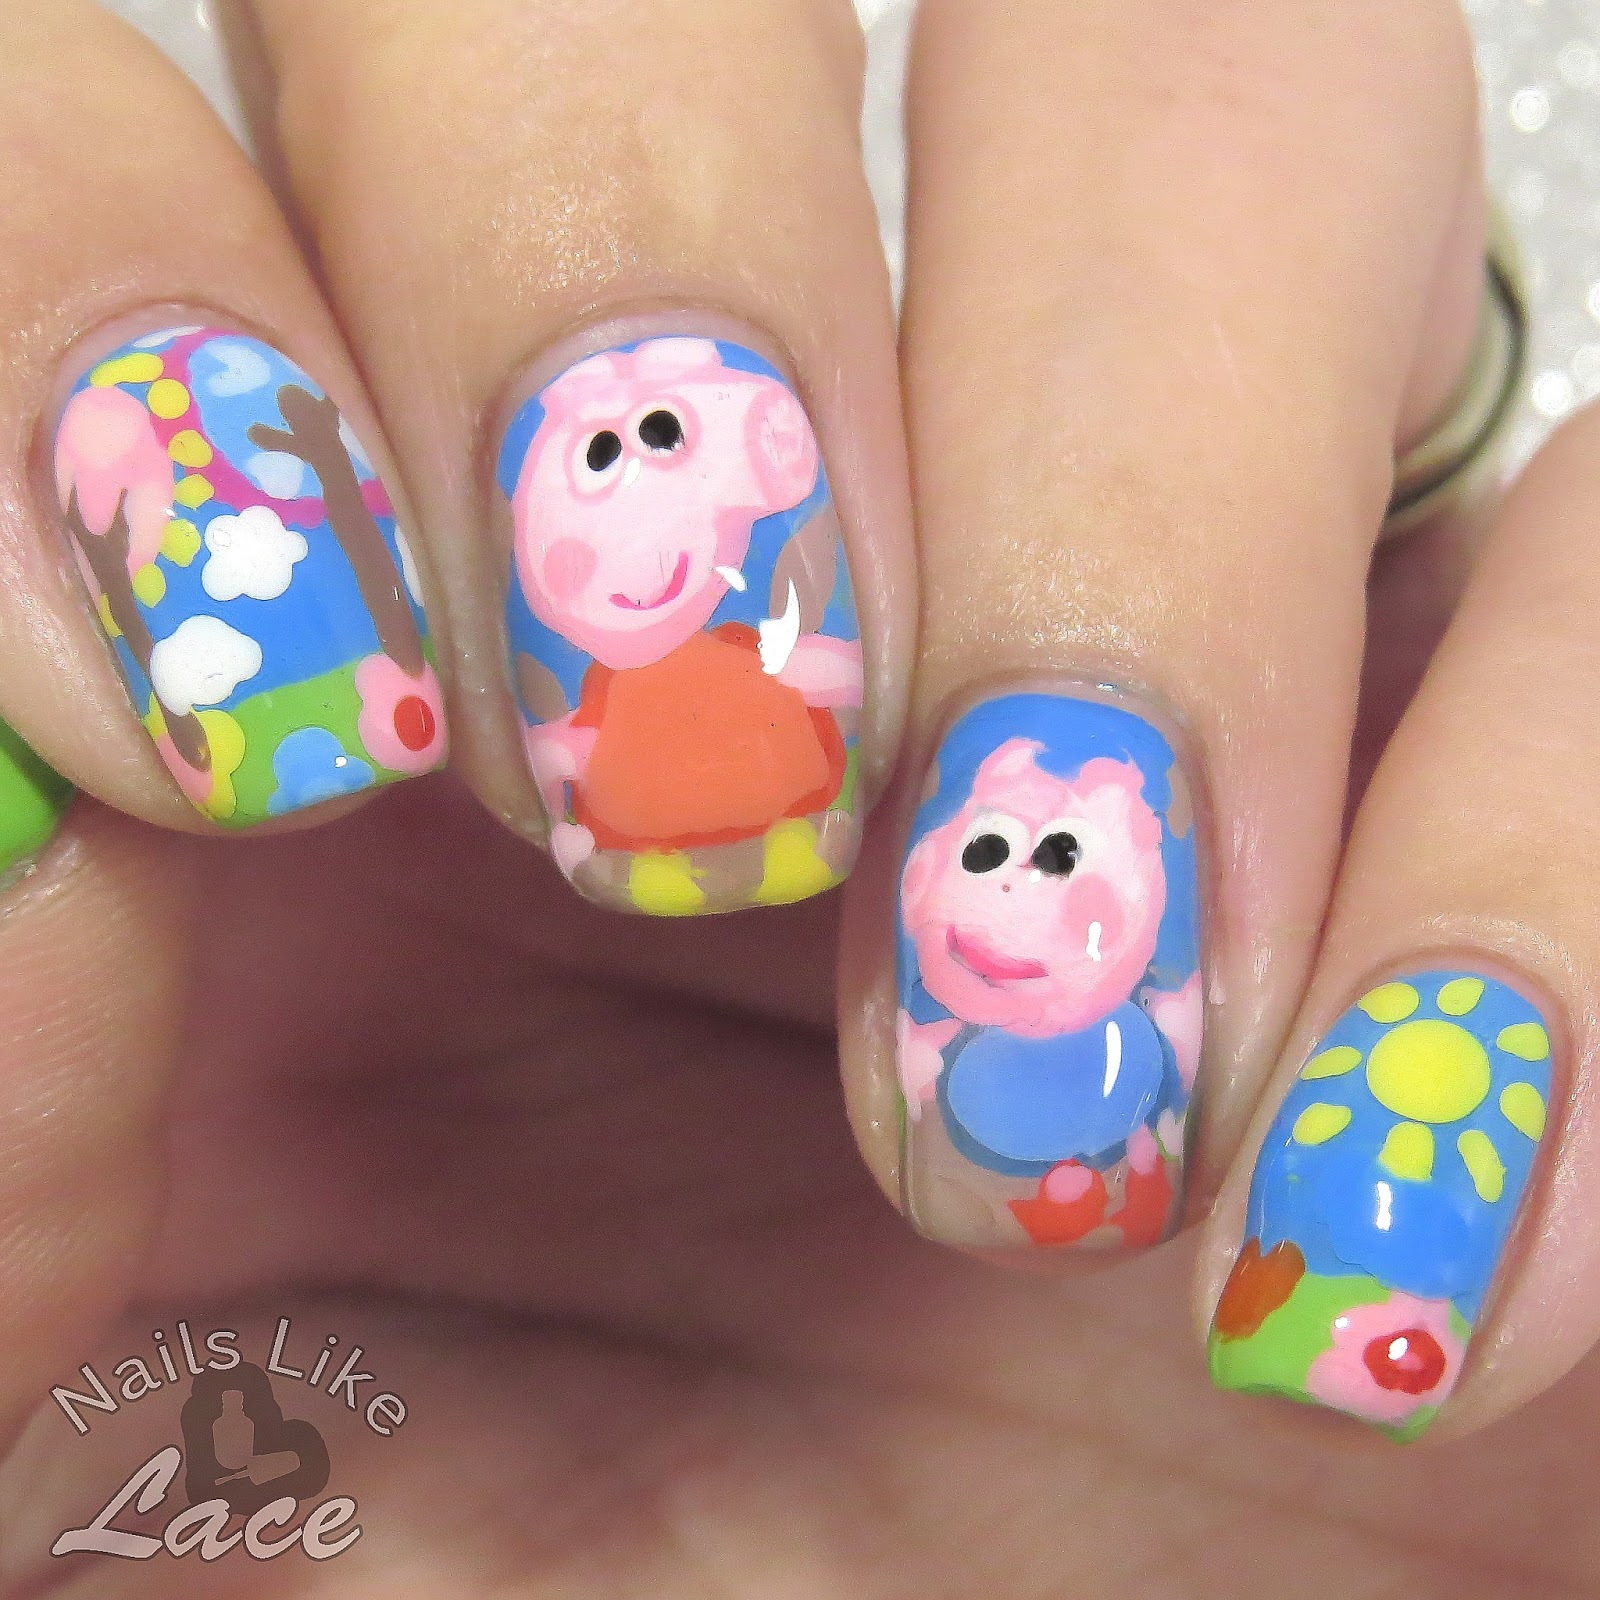 NailsLikeLace: 40 Great Nail Art Ideas: Kids\' T.V. - Peppa Pig Nails